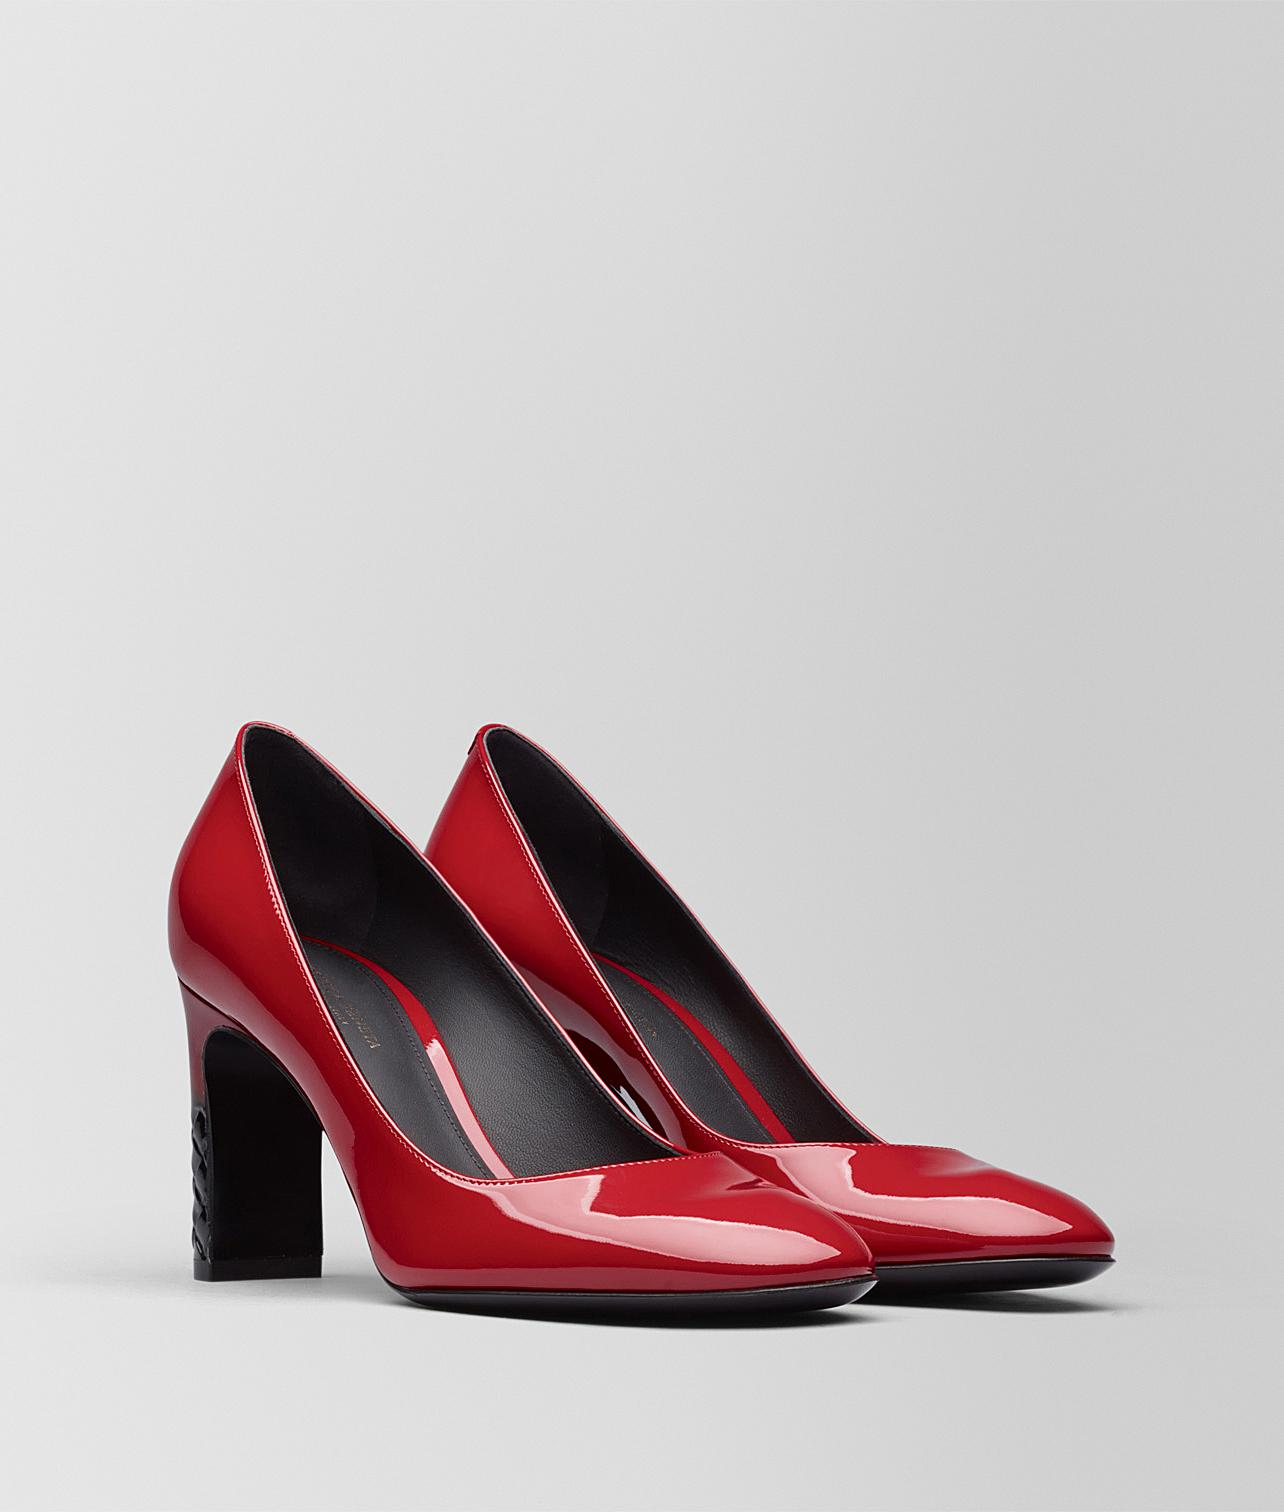 choice Bottega Veneta China red patent calf Isabella pump sale low price fee shipping really cheap shoes online bYt6RSom8s